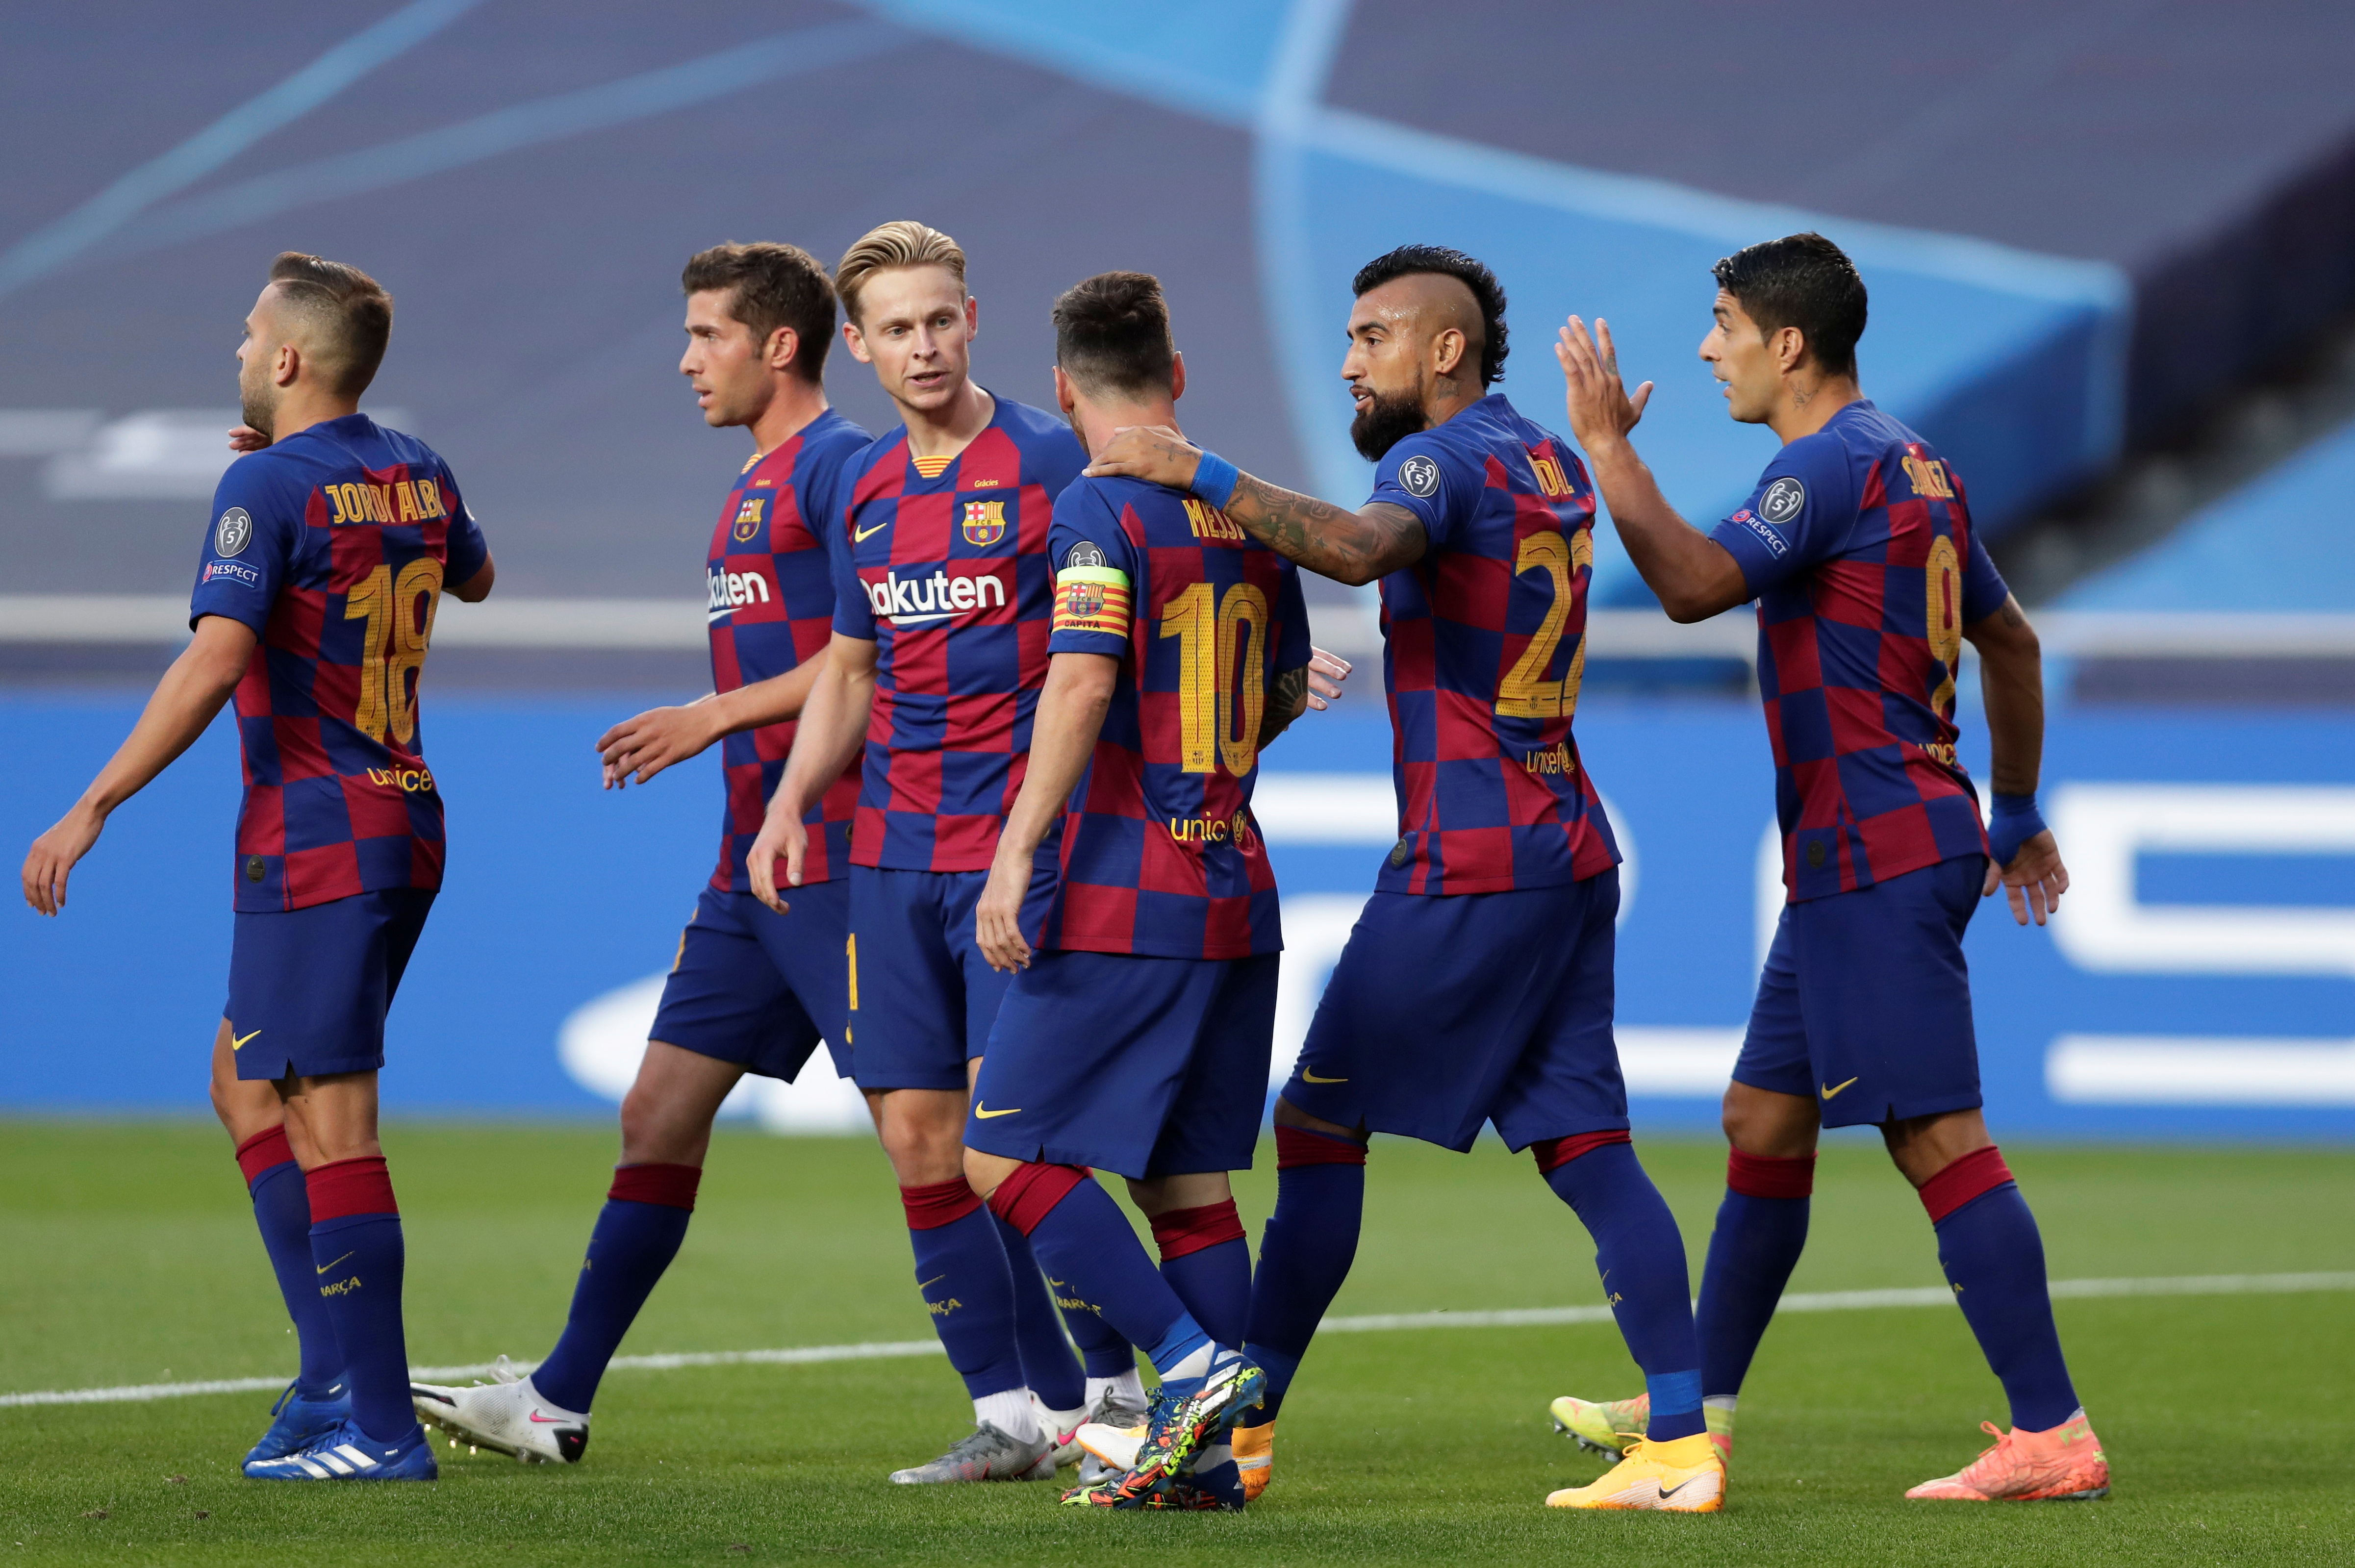 Barcelona players celebrate with teammates after Bayern Munich's David Alaba scored an own goal and their first goal, as play resumes behind closed doors following the outbreak of the coronavirus disease (COVID-19). Photo: Reuters